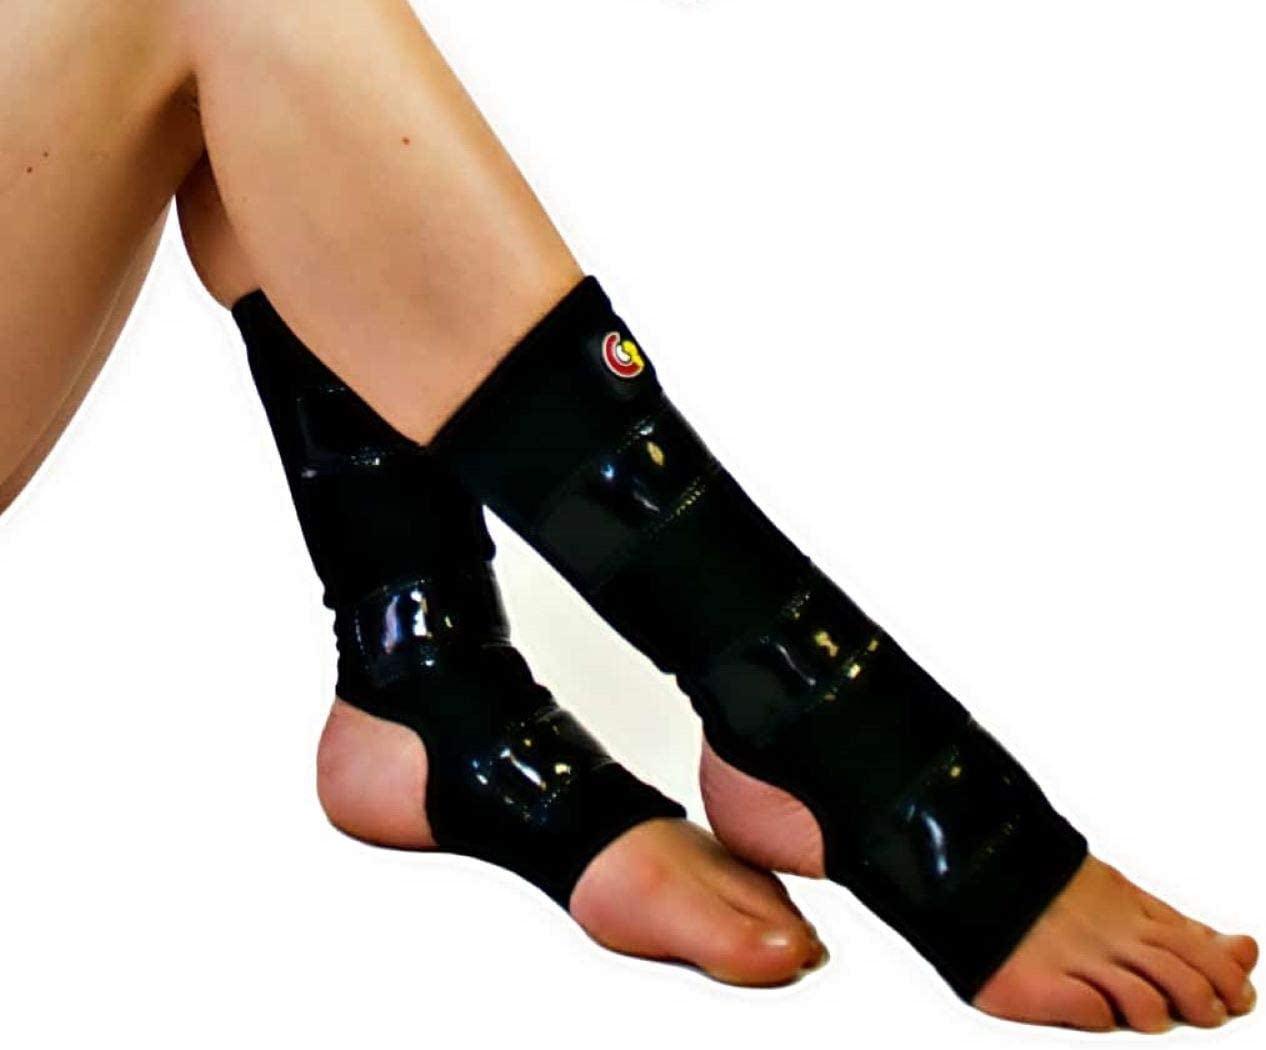 Mighty Grip Black Pole Dancing Ankle Protectors with Tack Strips for Gripping The Pole (Large)